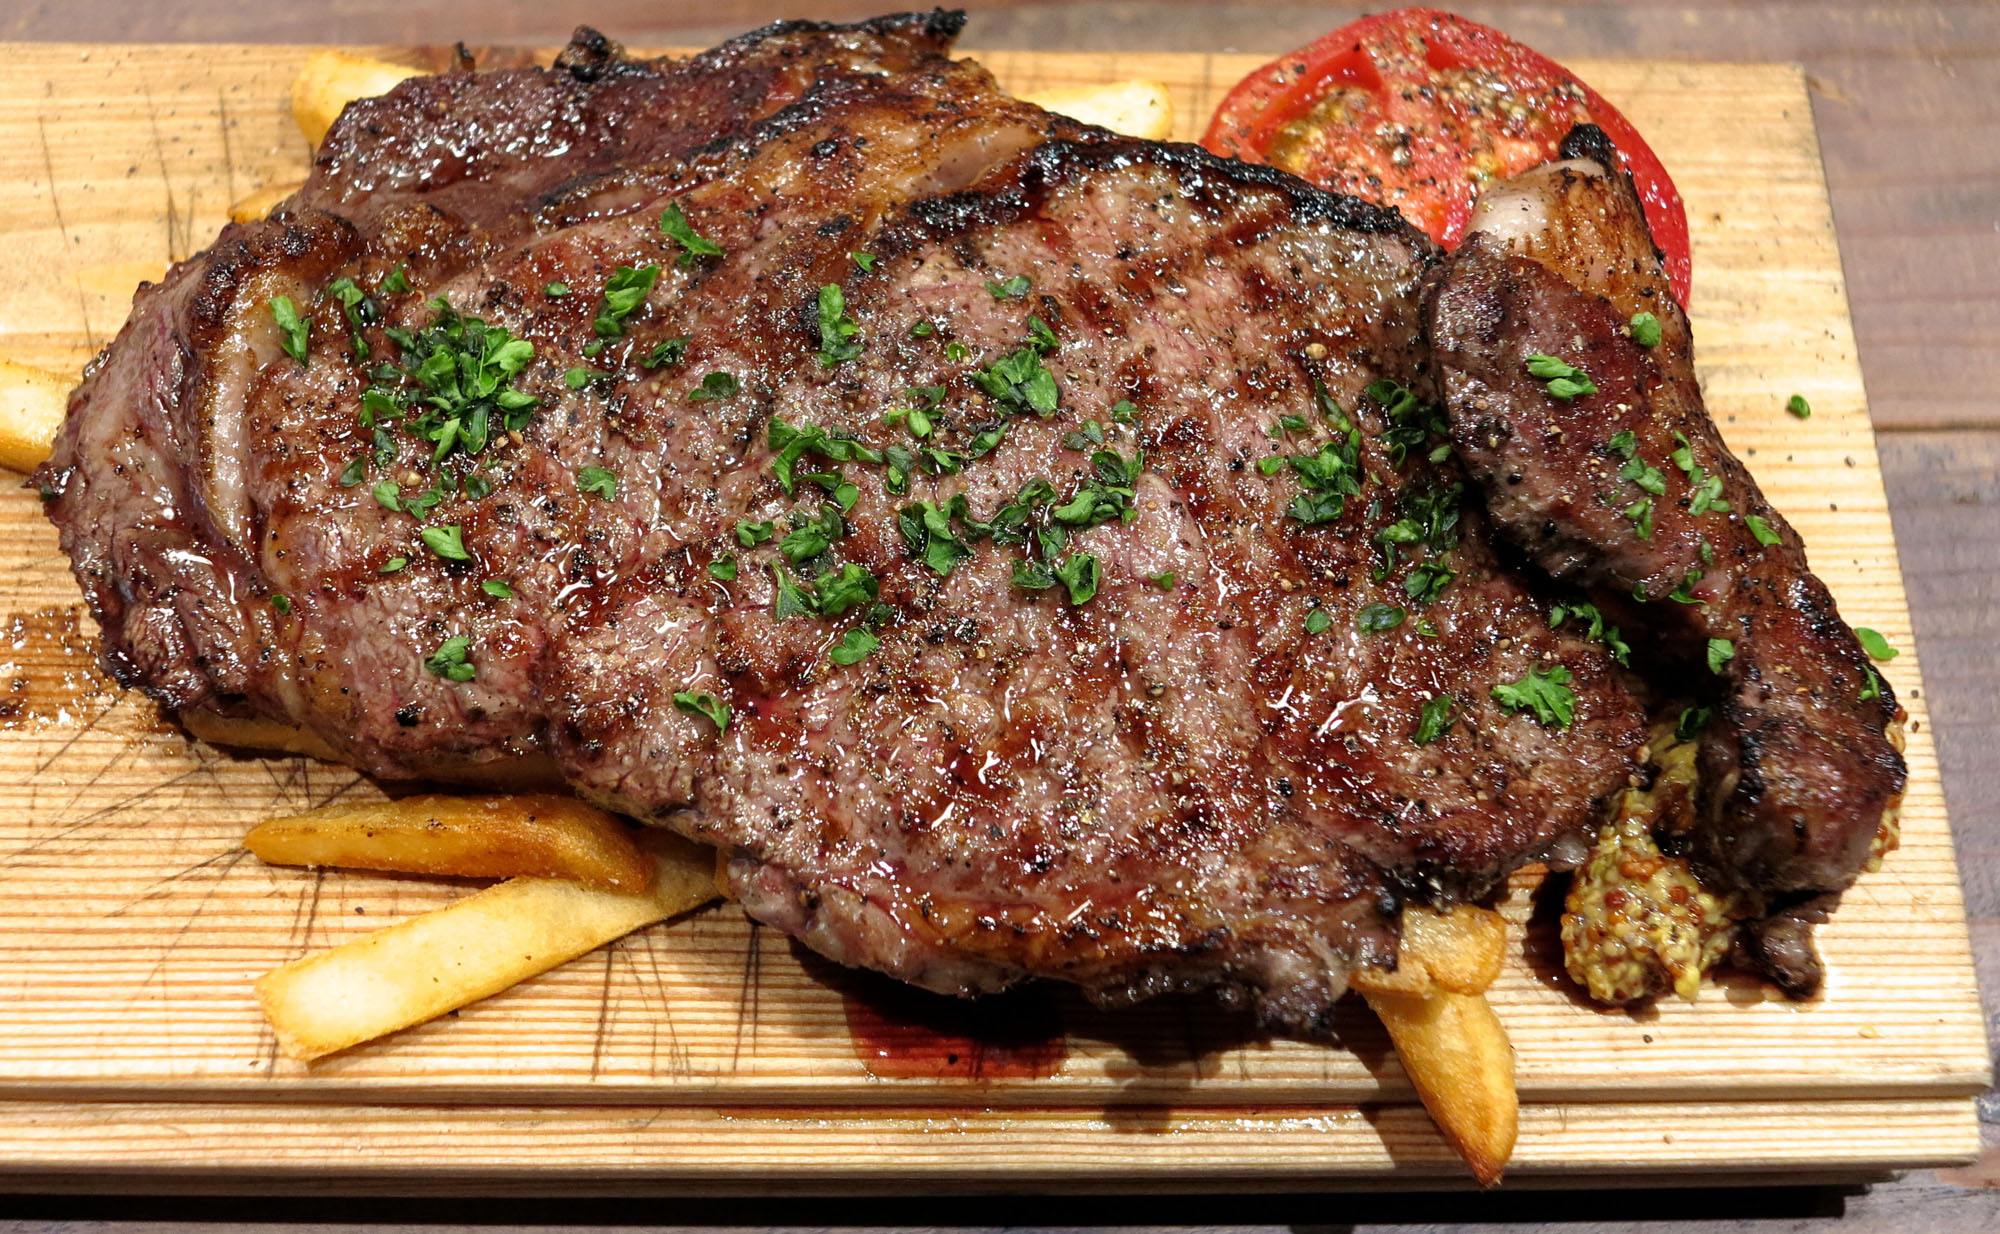 One of many steaks on offer at Butcher Brothers, served on a bed of fries. | ROBBIE SWINNERTON